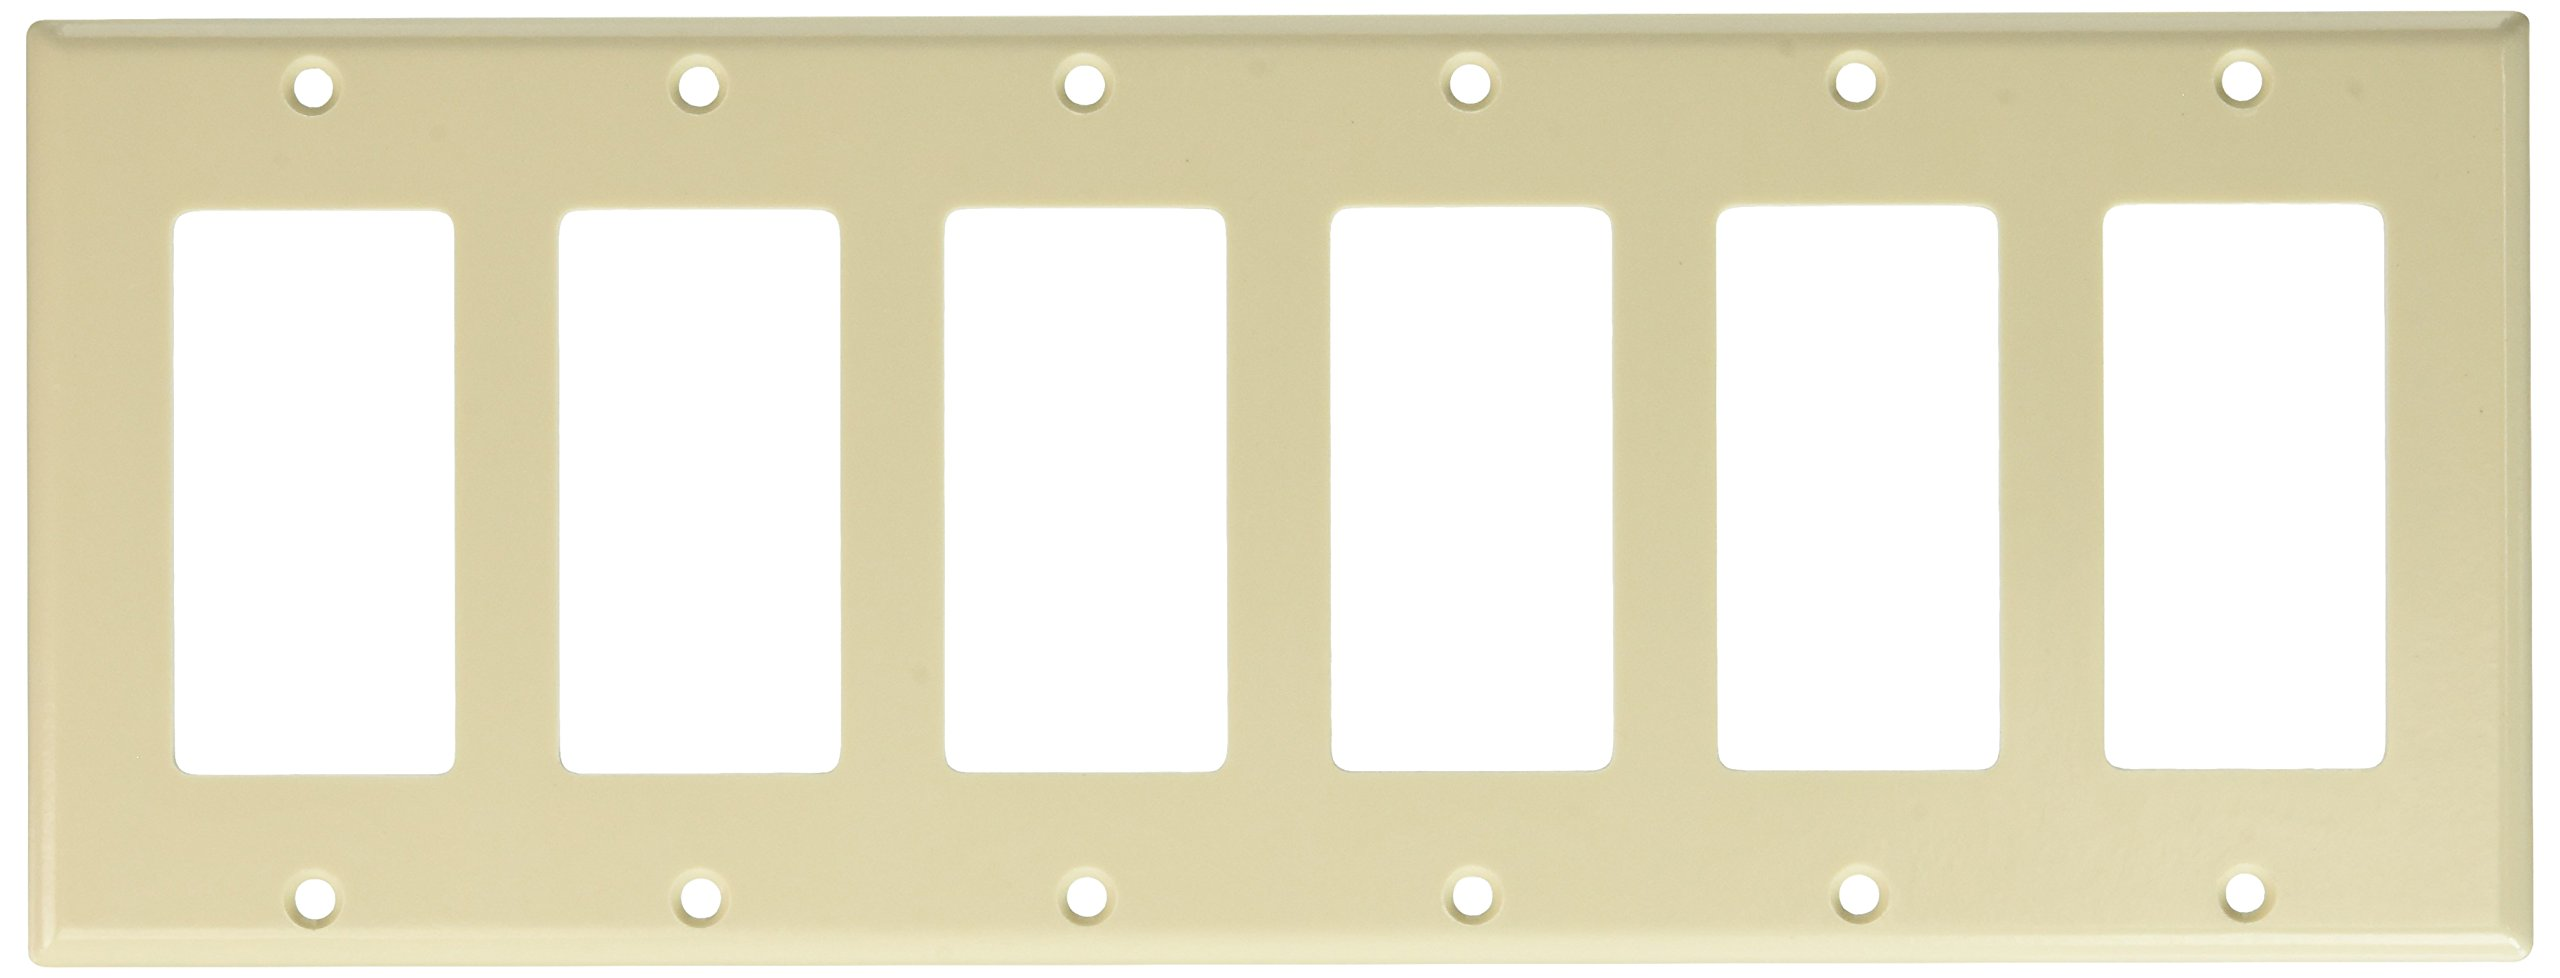 Leviton 80436-T 6-Gang Decora/GFCI Device Decora Wallplate, Standard Size, Thermoset, Device Mount, Light Almond, 10-Pack